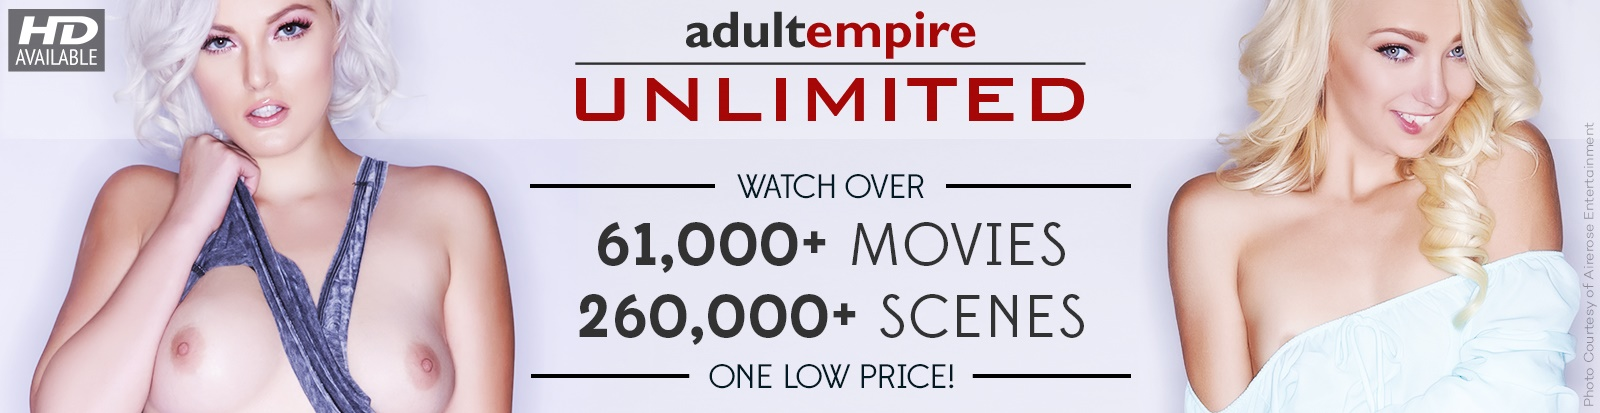 Join Unlimited now and get access to over 260,000 scenes.